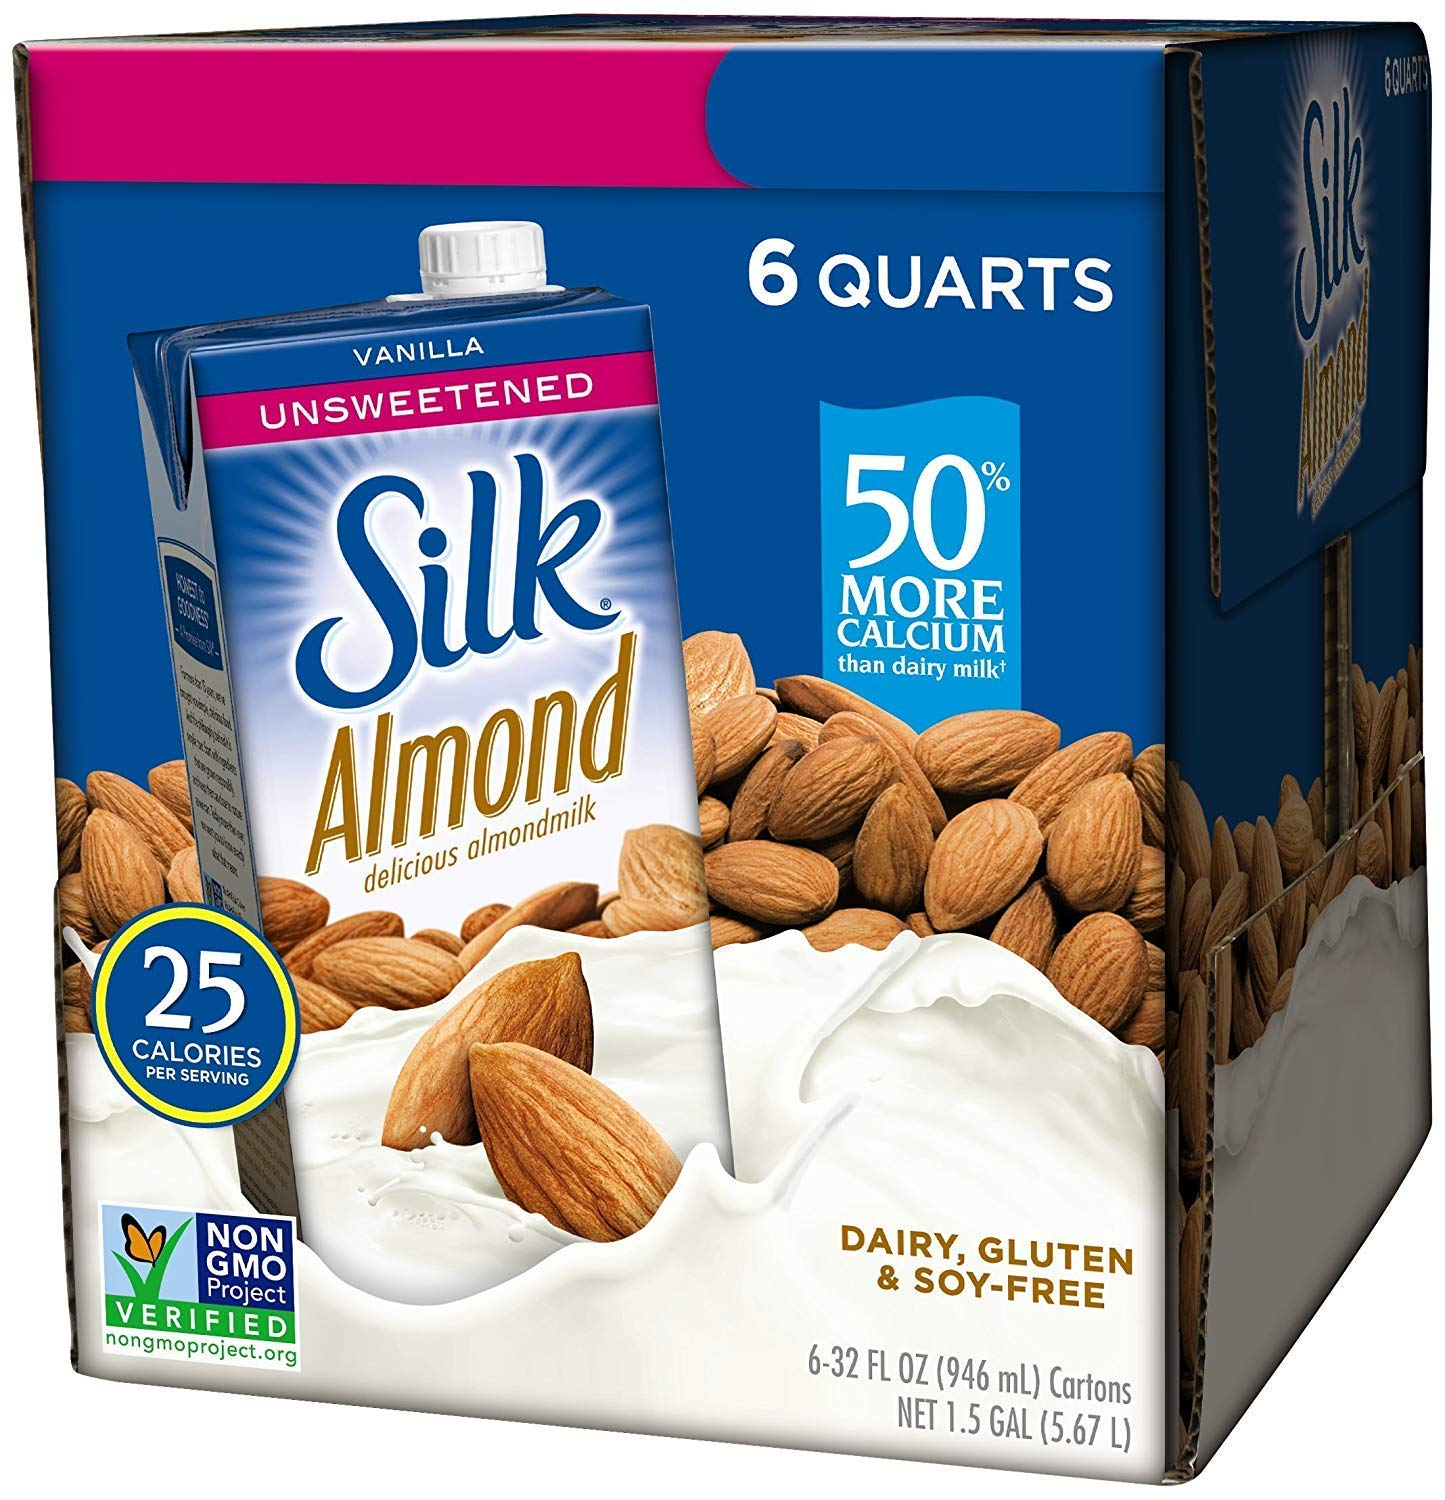 Silk Almond Milk, Unsweetened Vanilla, 32 Fluid Ounce (Pack of 6), Vanilla Flavored Non-Dairy Almond Milk, Dairy-Free Milk (2-Box (Pack of 6))